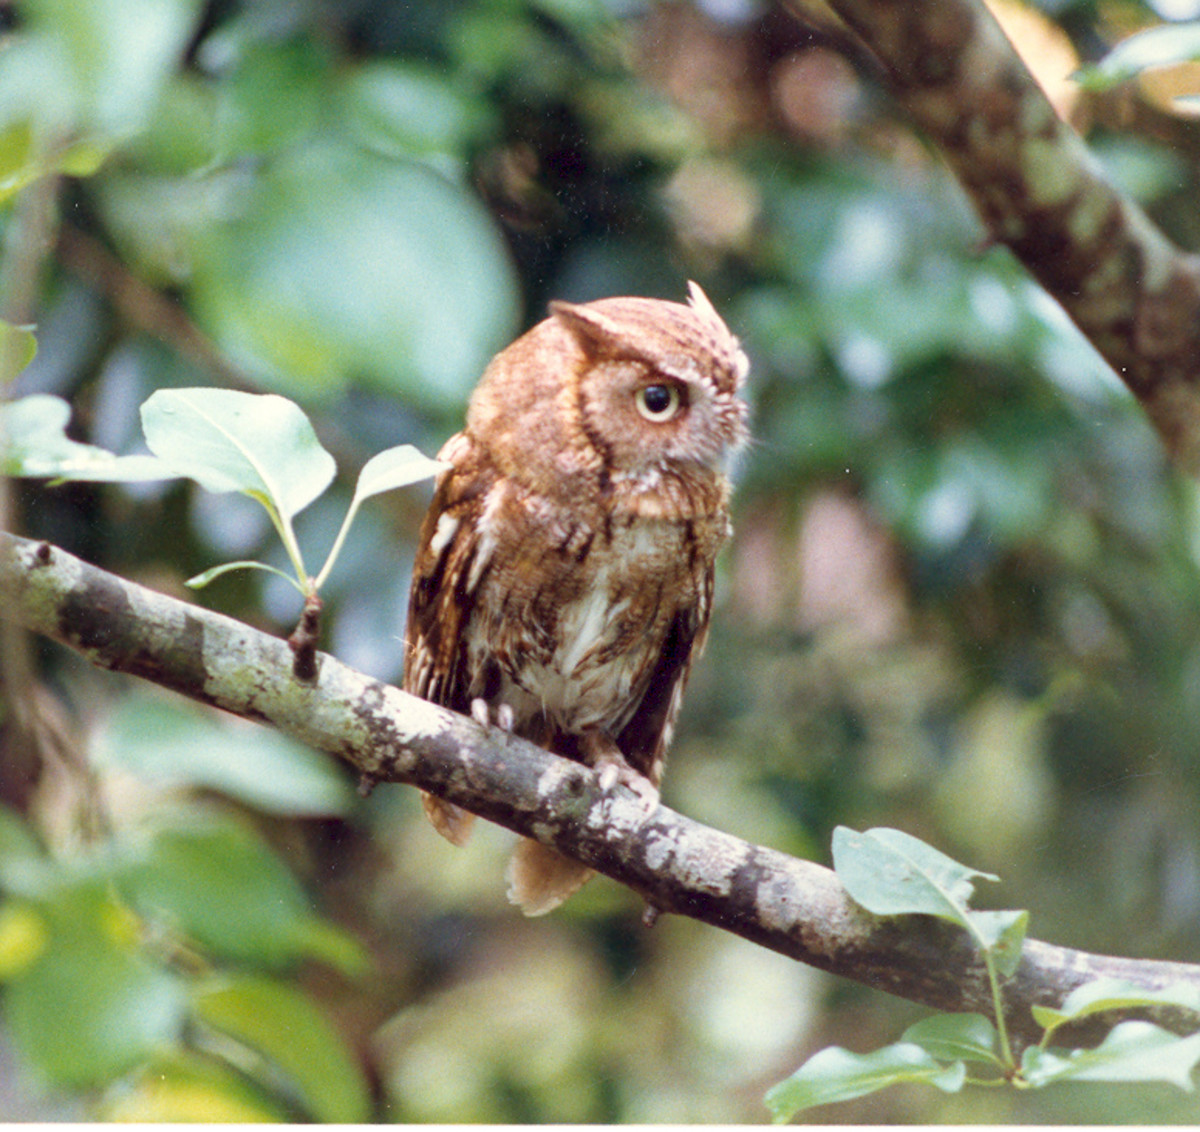 Predators, such as this Eastern screech owl, are also needed to balance the environment and are an important link in the food chain.